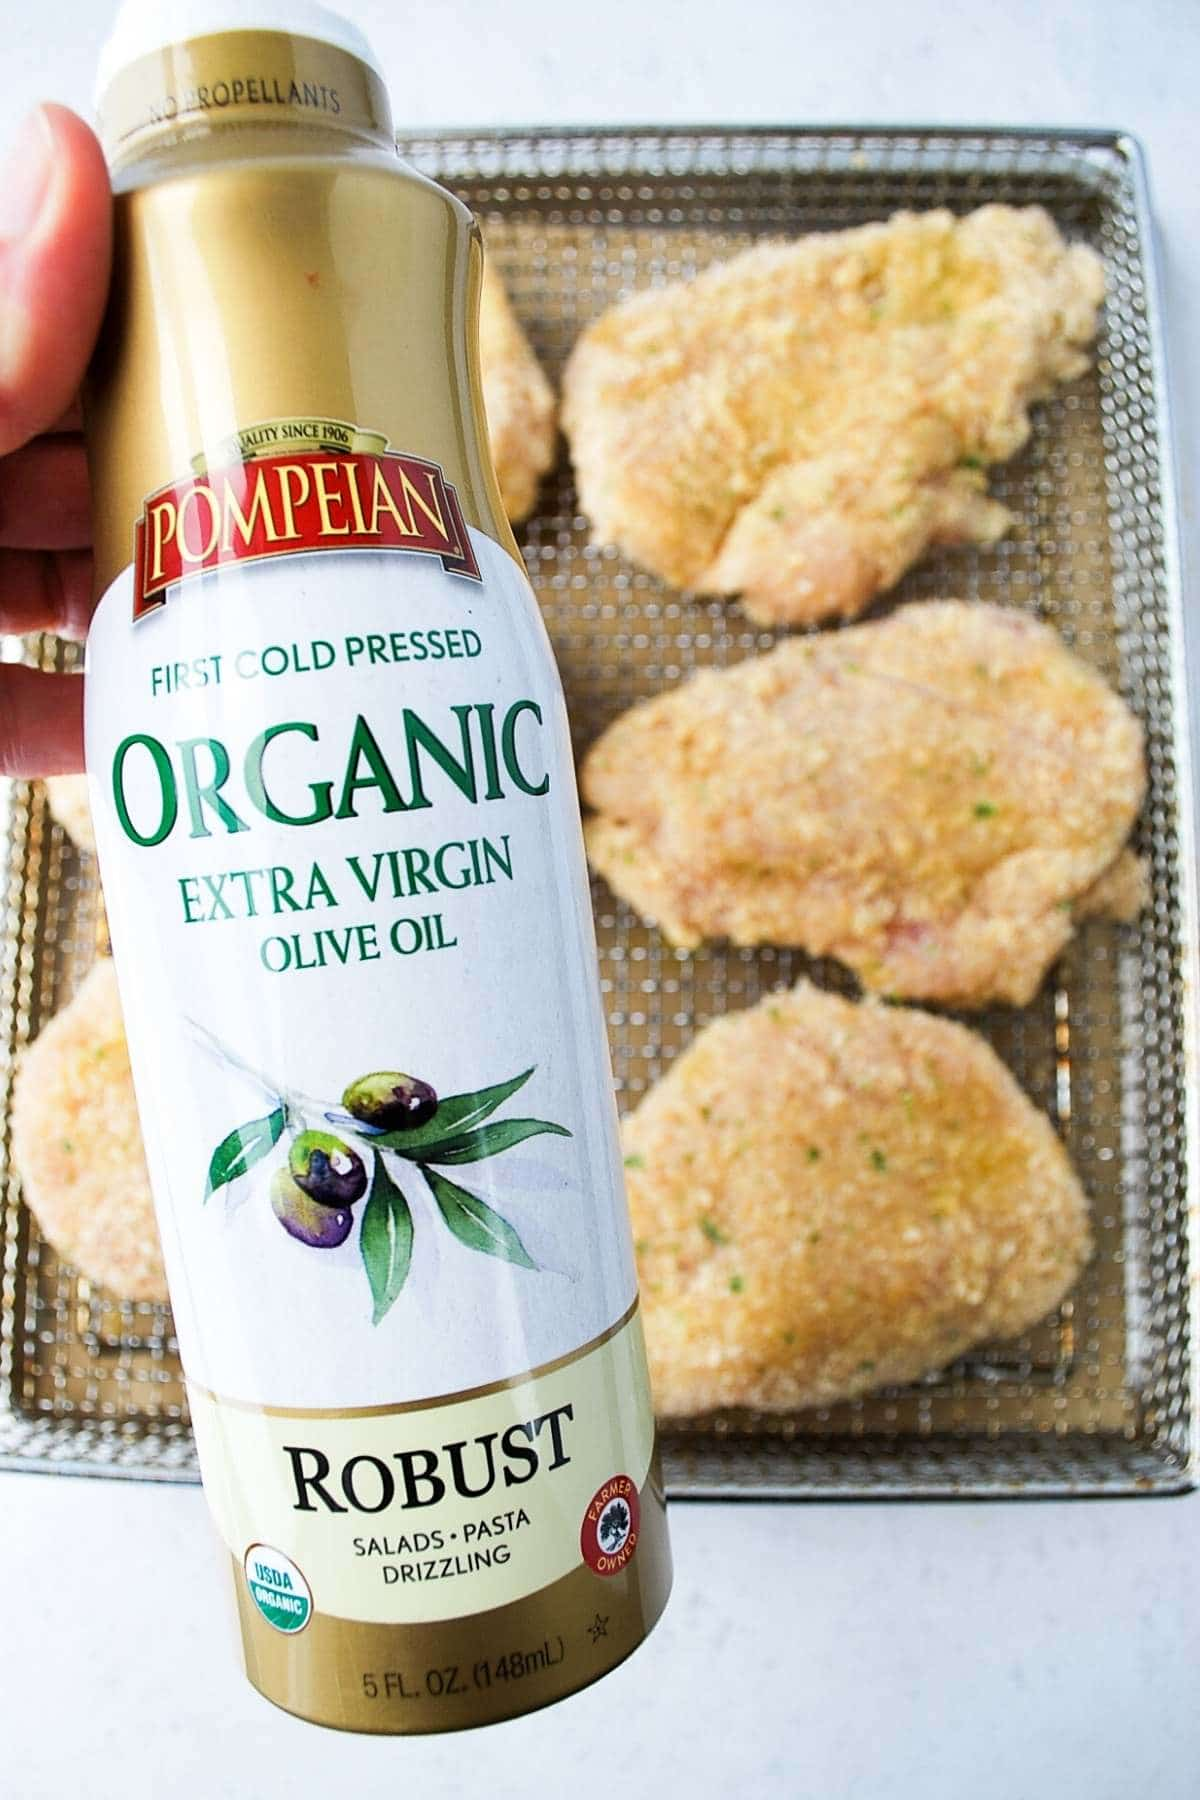 ready to spray cooking oil on breaded chicken breasts